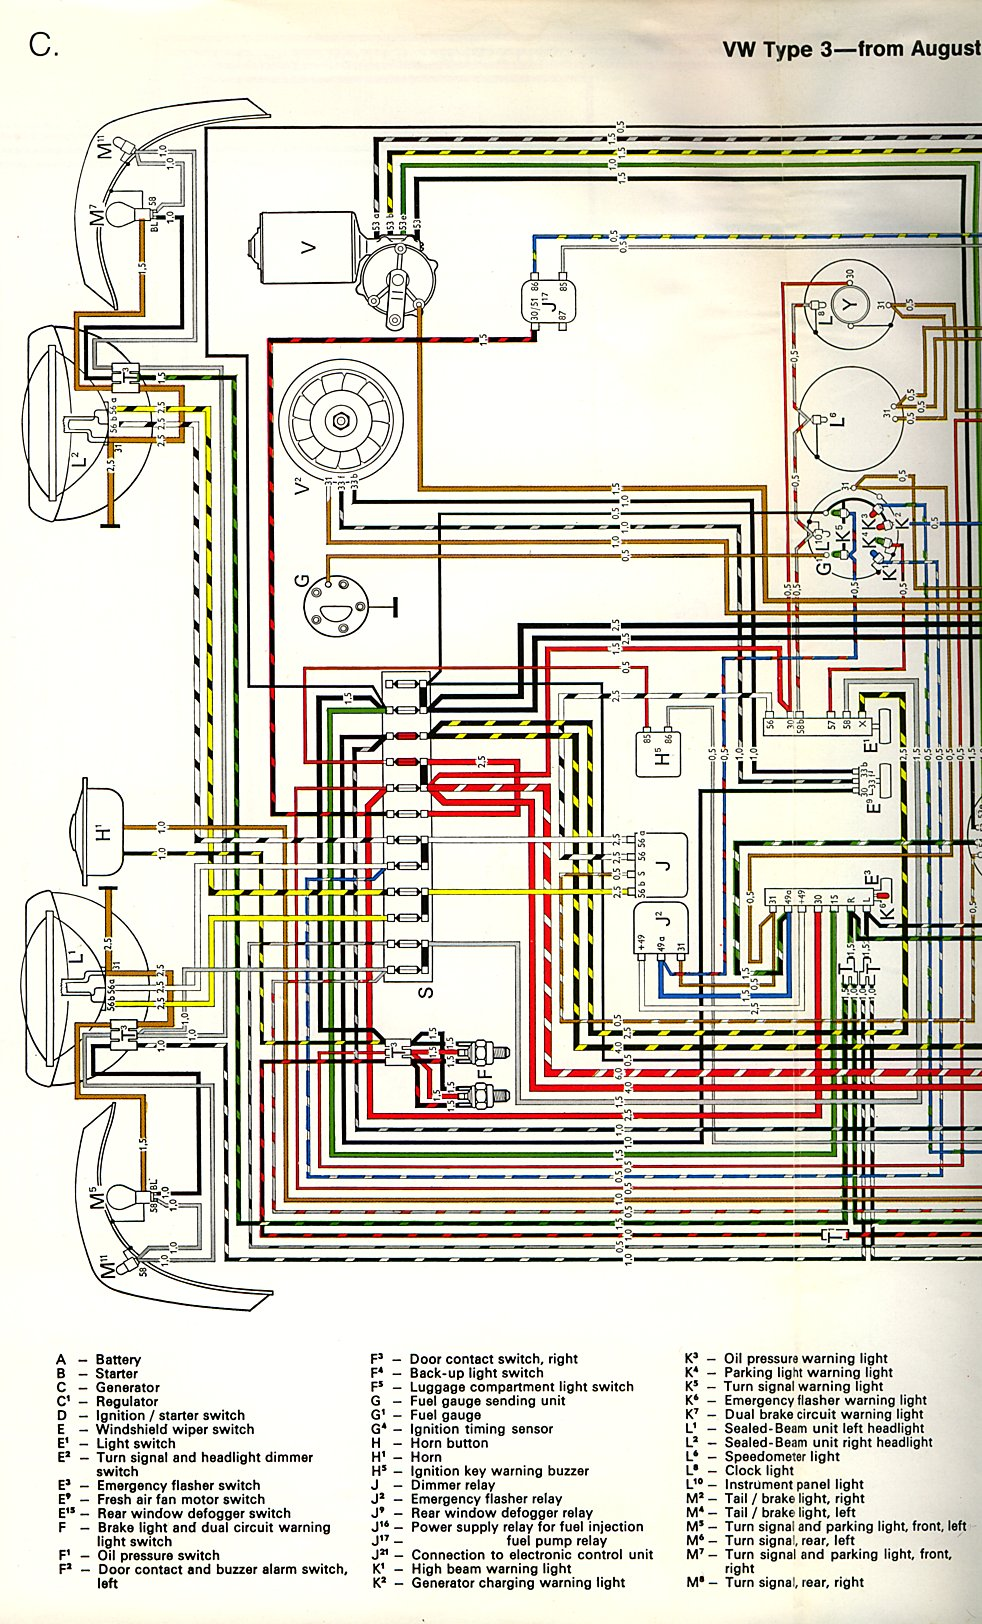 vw bus wiring harness best wiring library 1969 VW Bus Fuse Box thesamba com type 3 wiring diagrams rh thesamba com 1969 vw bus wiring harness vw wiring